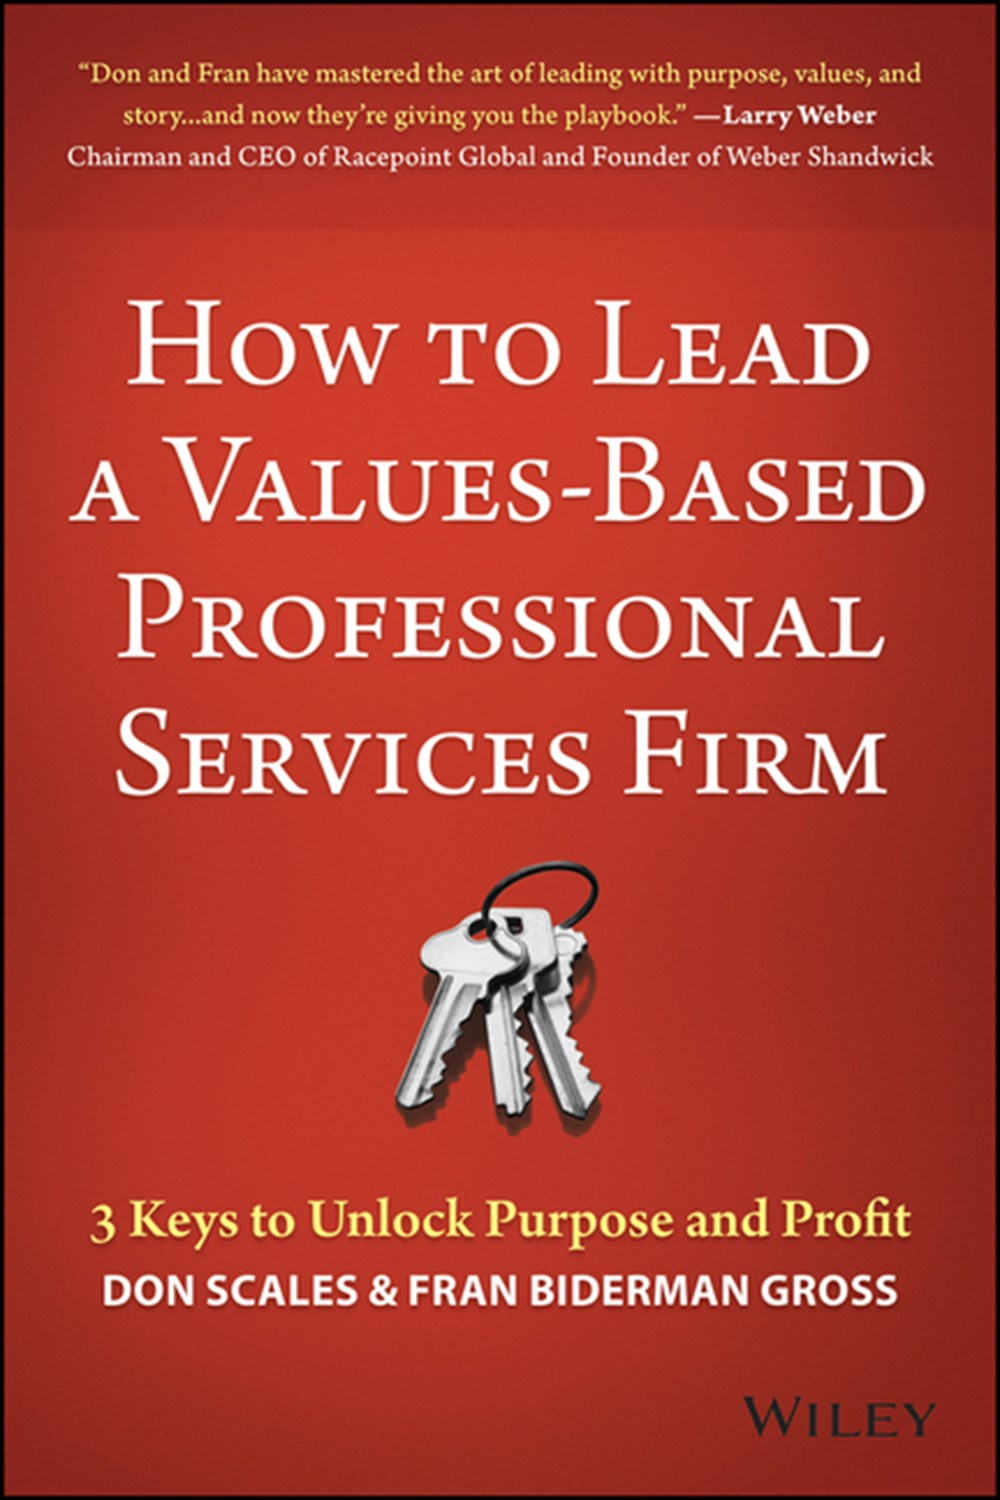 How to Lead a Values-Based Professional Services Firm 3 Keys to Unlock Purpose and Profit